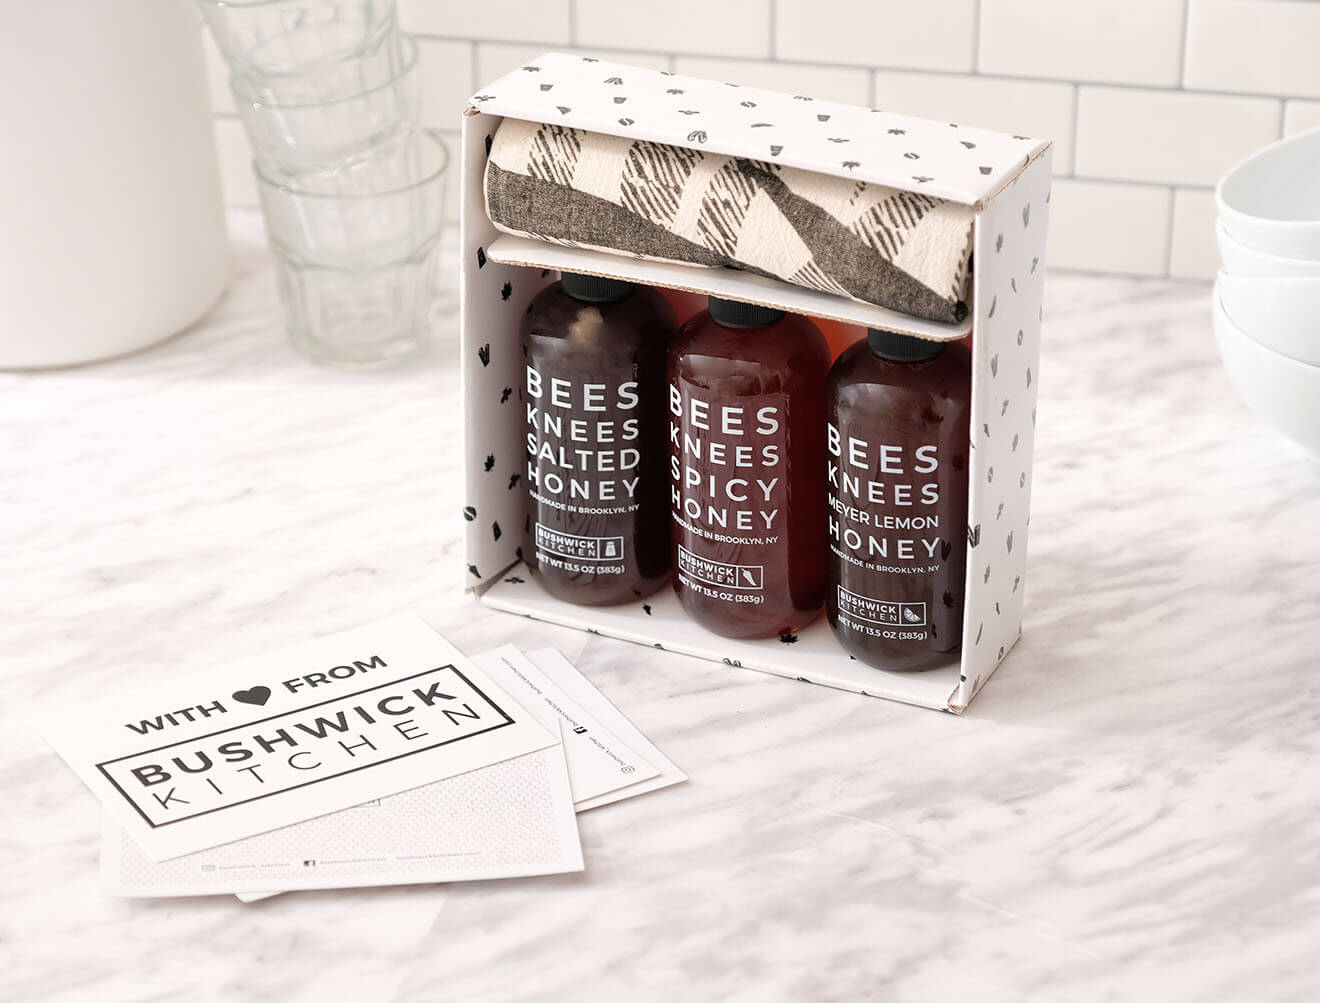 Bushwick Kitchen Condiments, packaging and bottles on marble